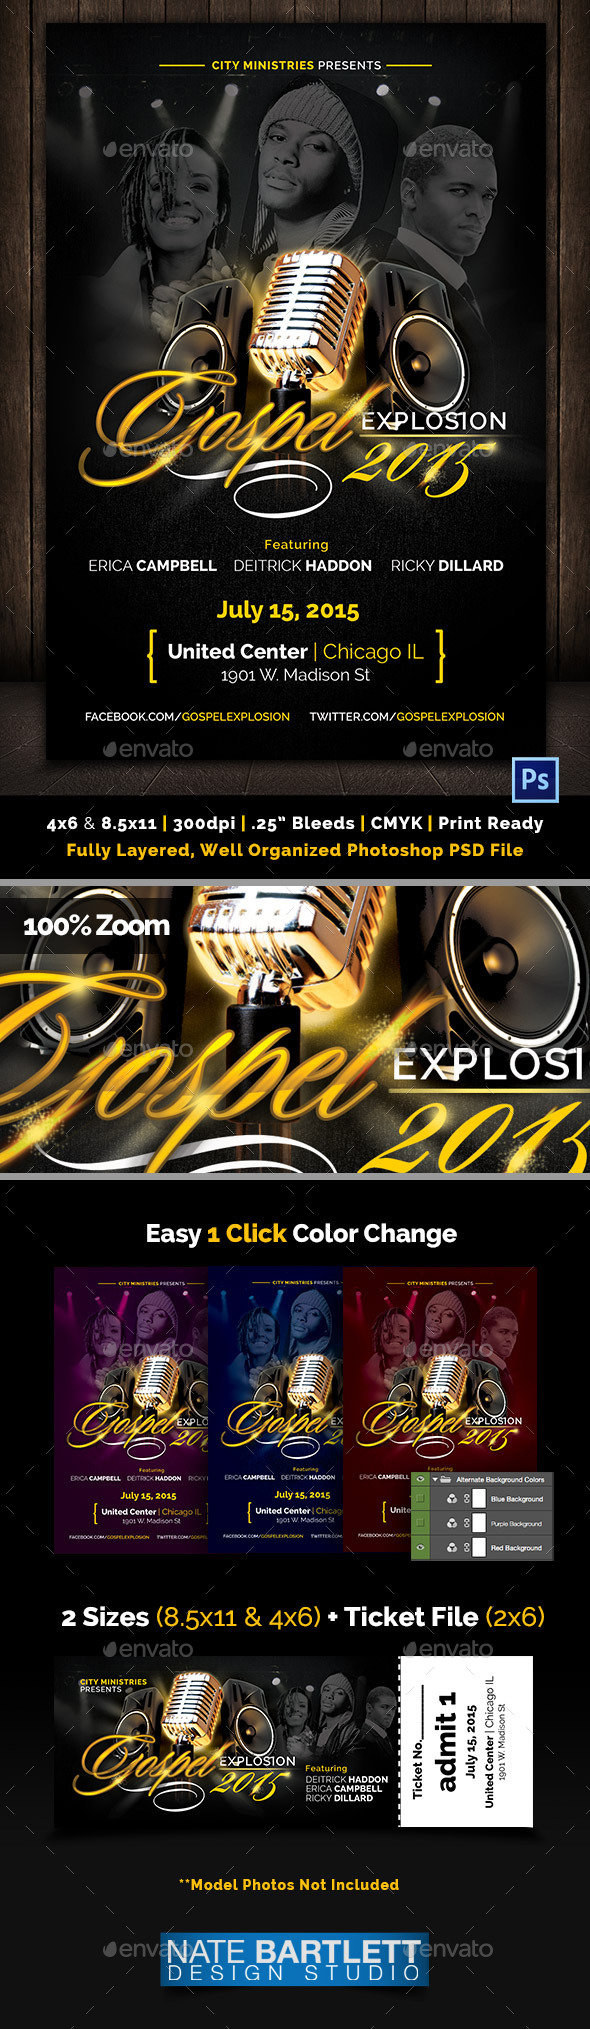 Gospel Explosion Flyer Template